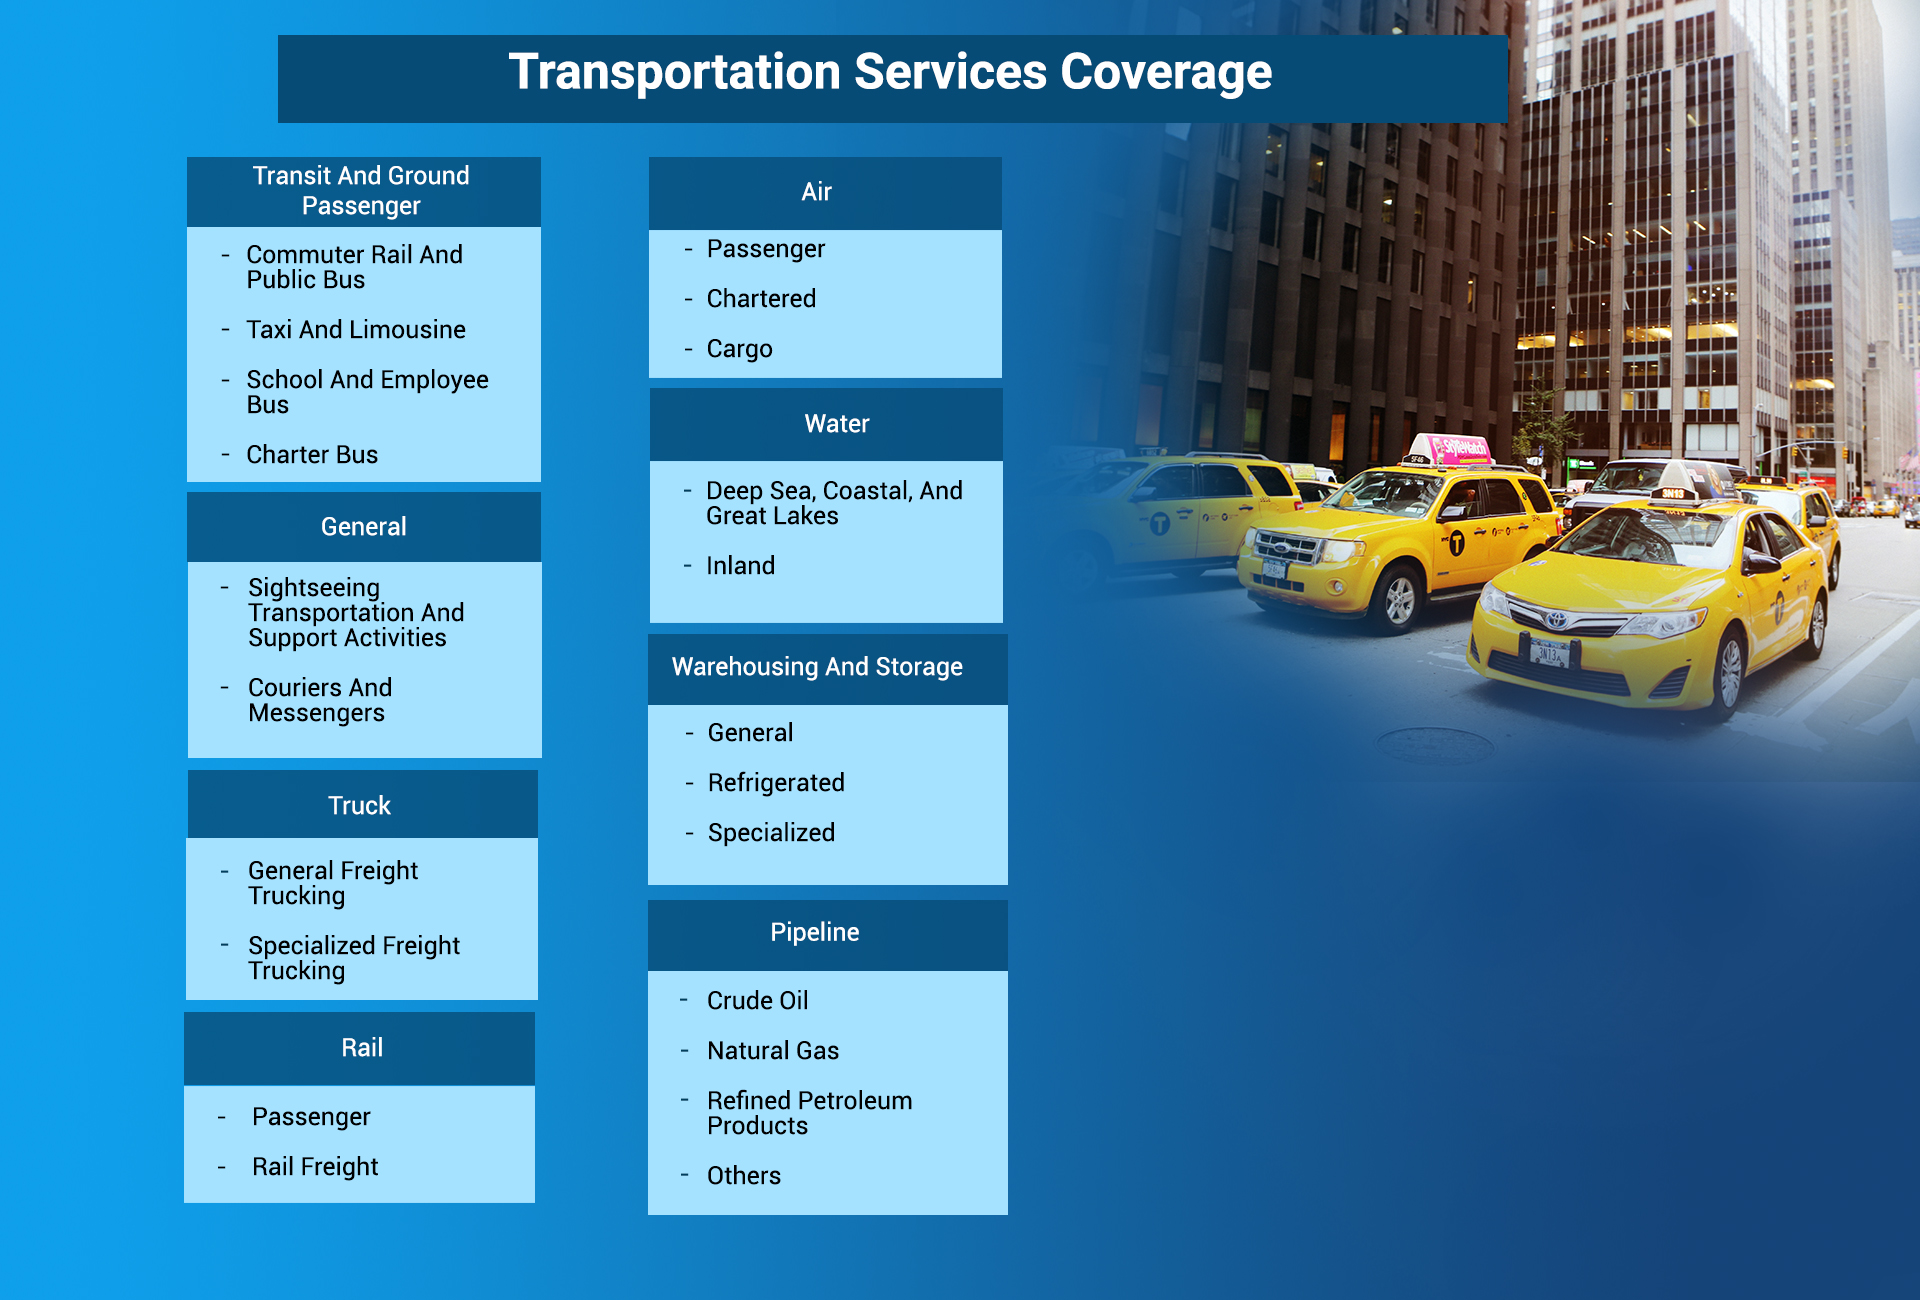 Transportation Services Coverage